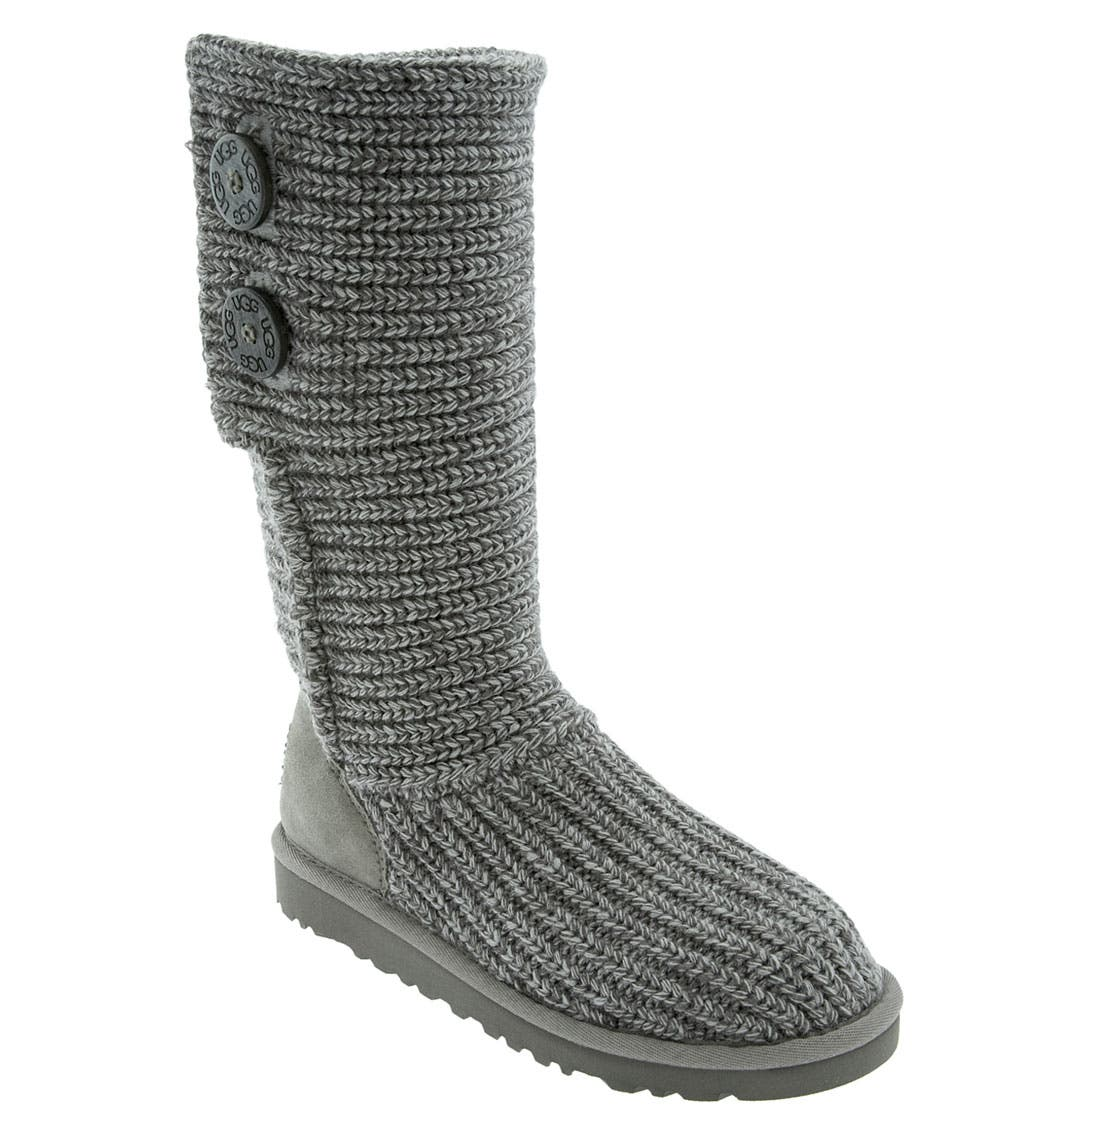 Alternate Image 1 Selected - UGG® 'Cardy' Crochet Boot (Toddler, Little Kid & Big Kid)